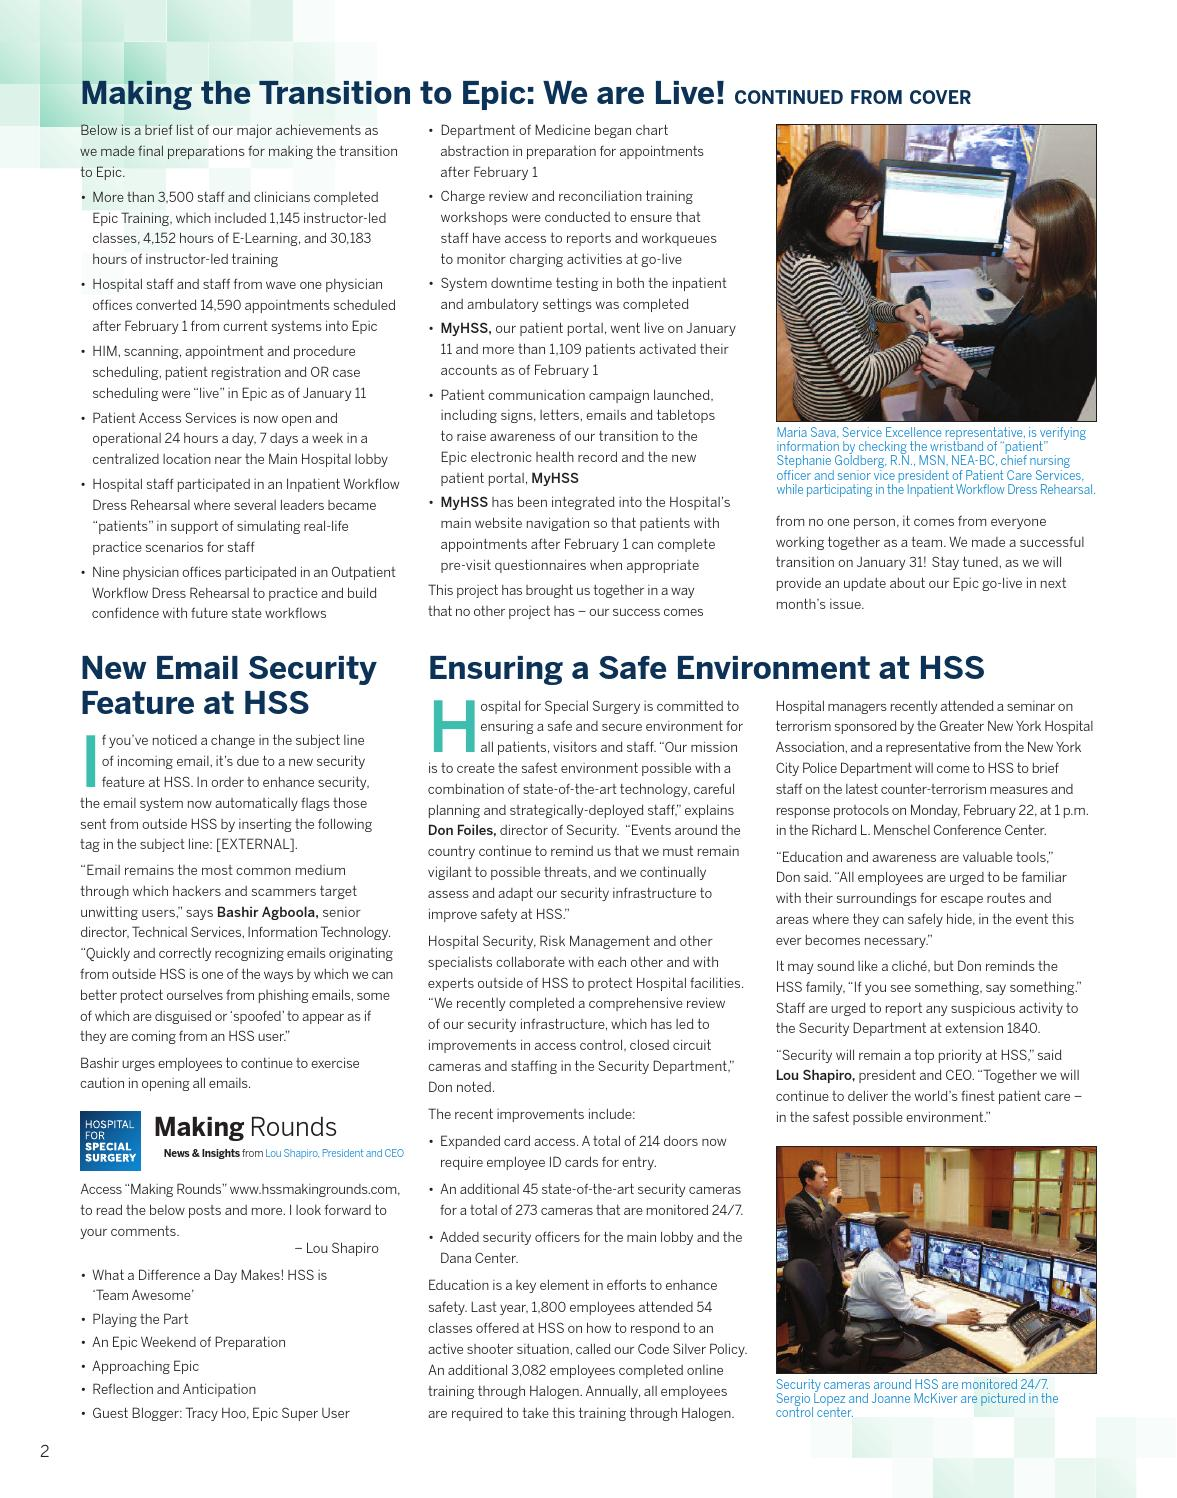 HSS Echo January 2016 by Hospital for Special Surgery - issuu